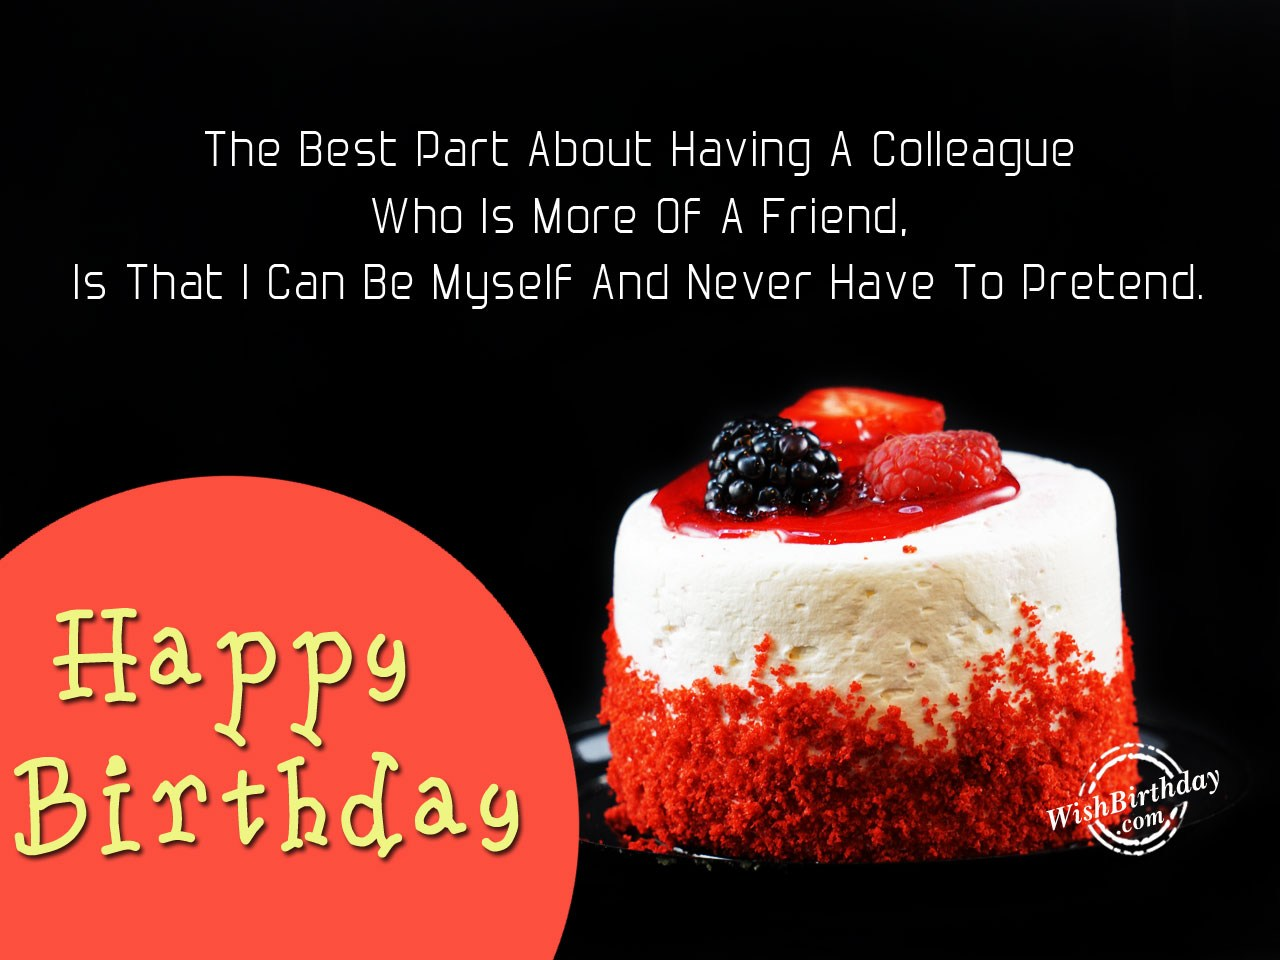 happy birthday wish to senior colleague ; A-Colleague-Who-Is-More-Of-A-Friend